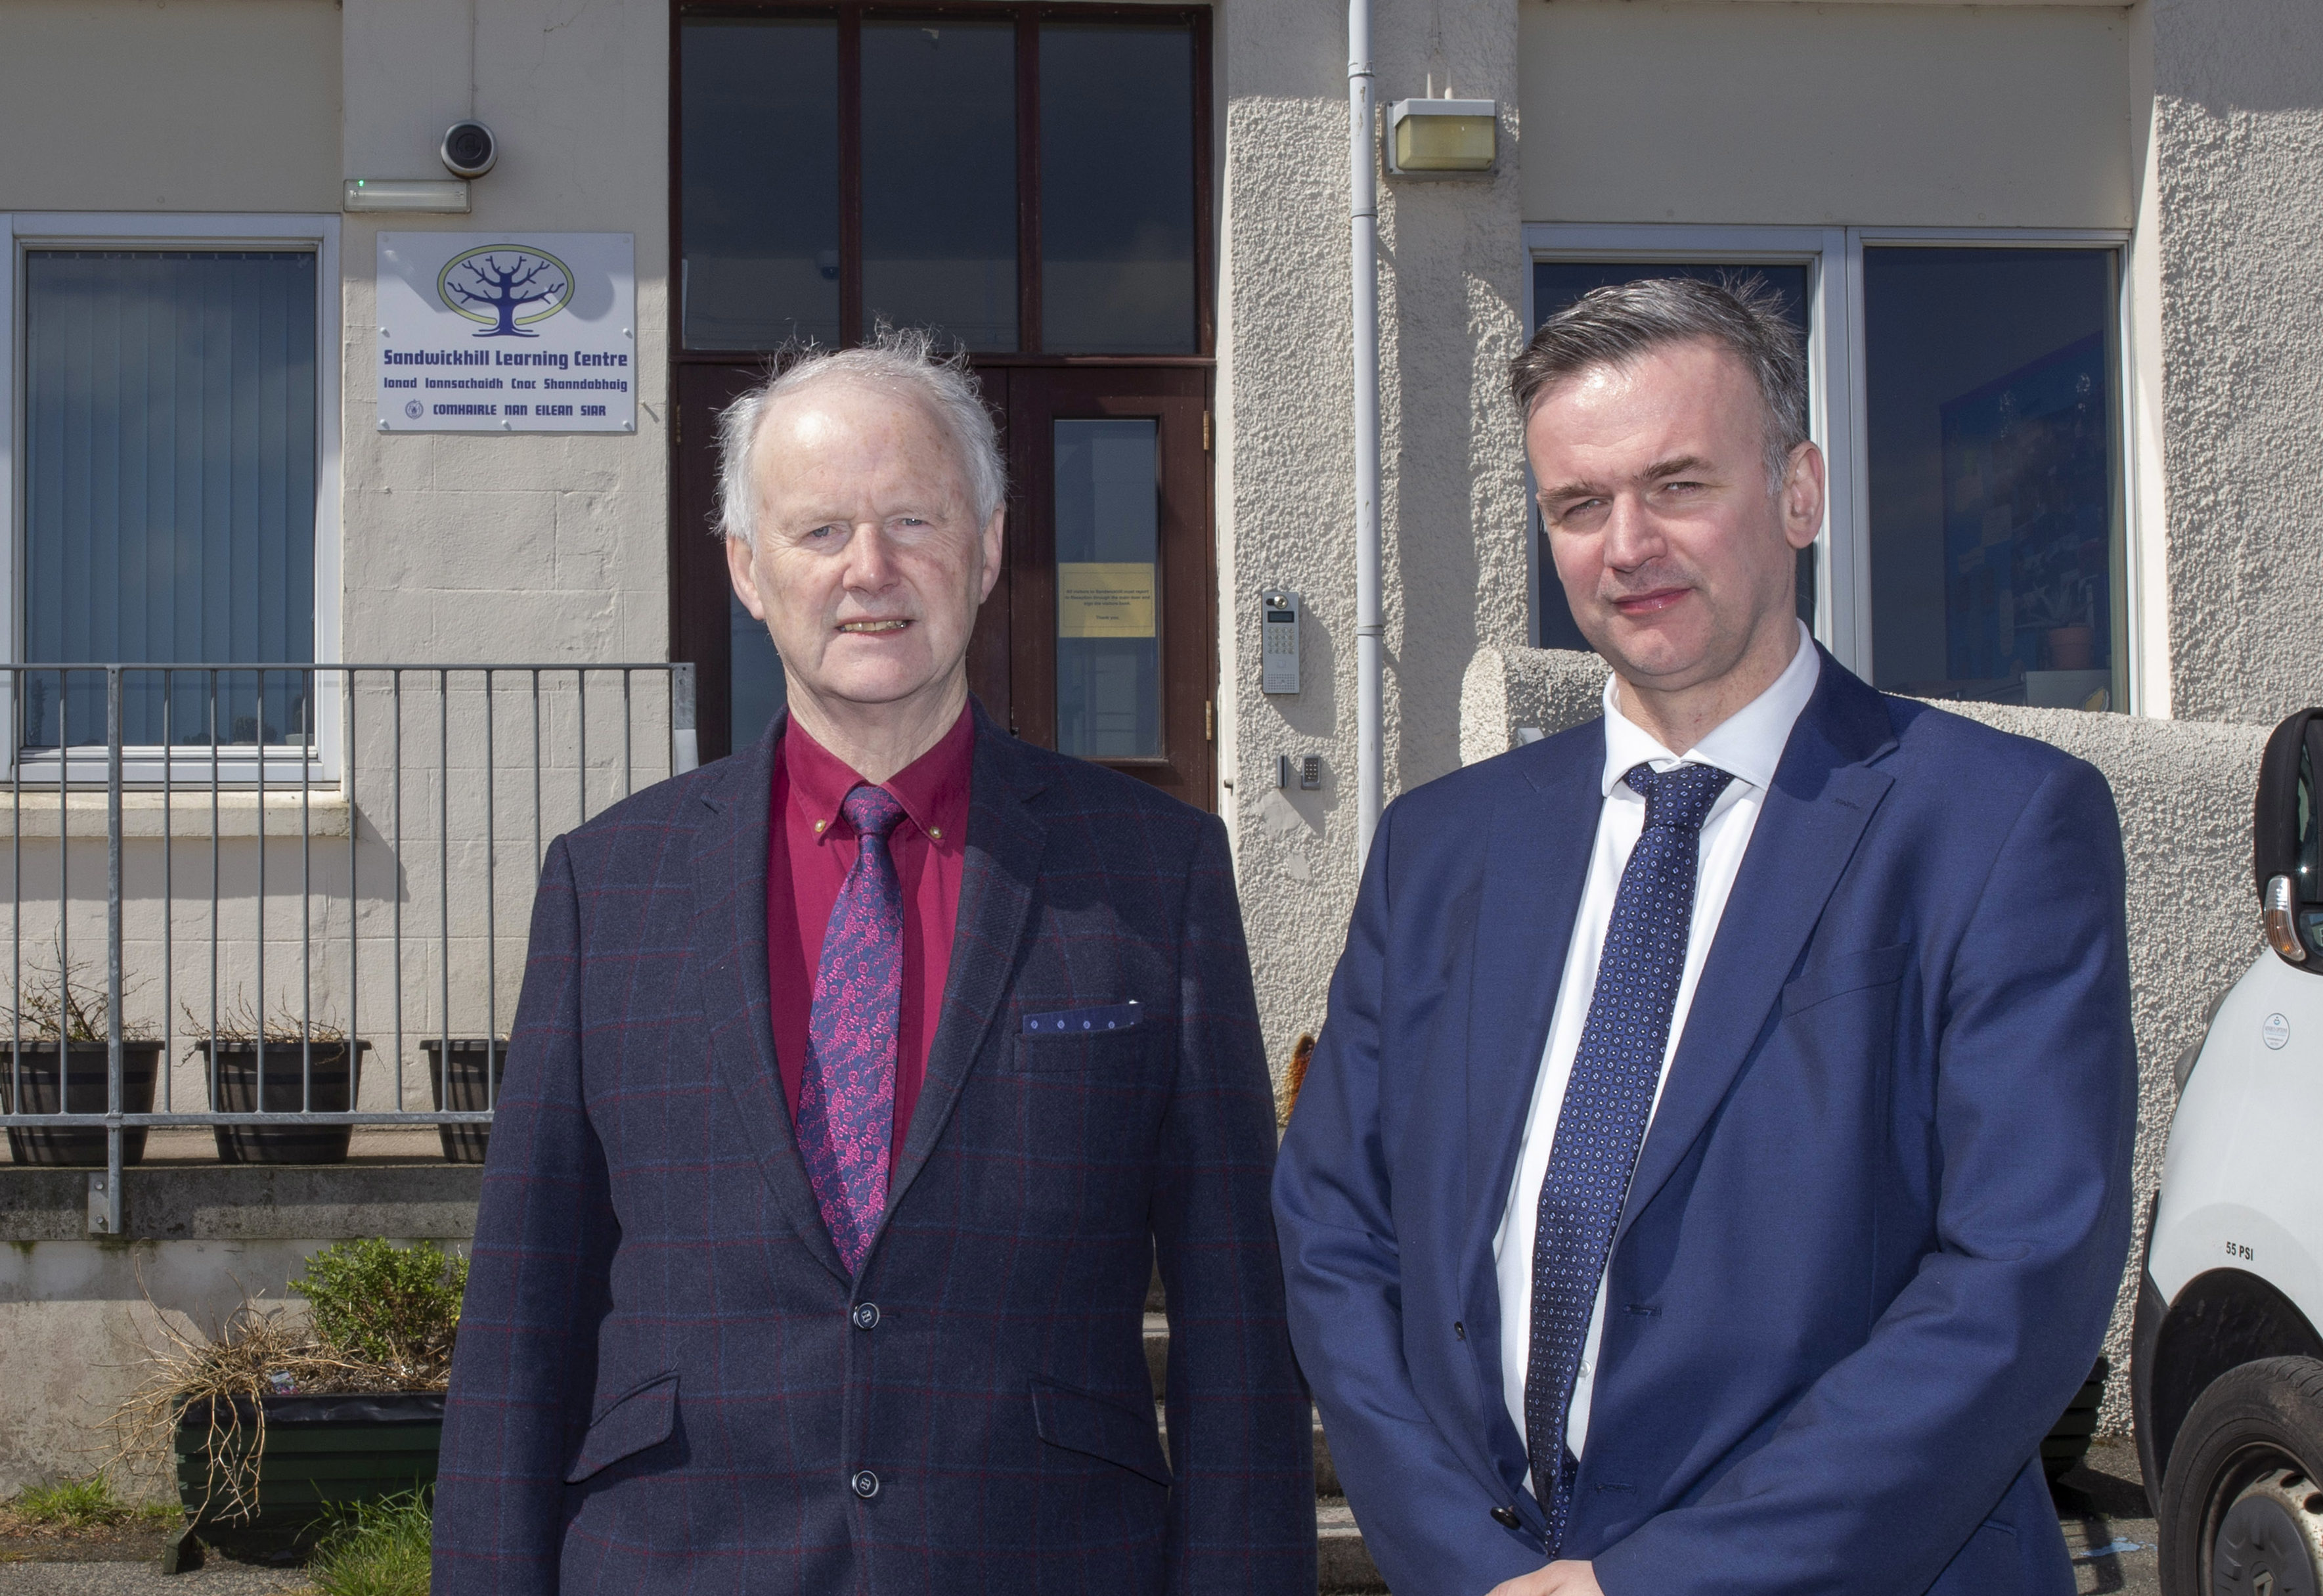 Councillors Rae MacKenzie and Gordon Murray at Sandwickhill School